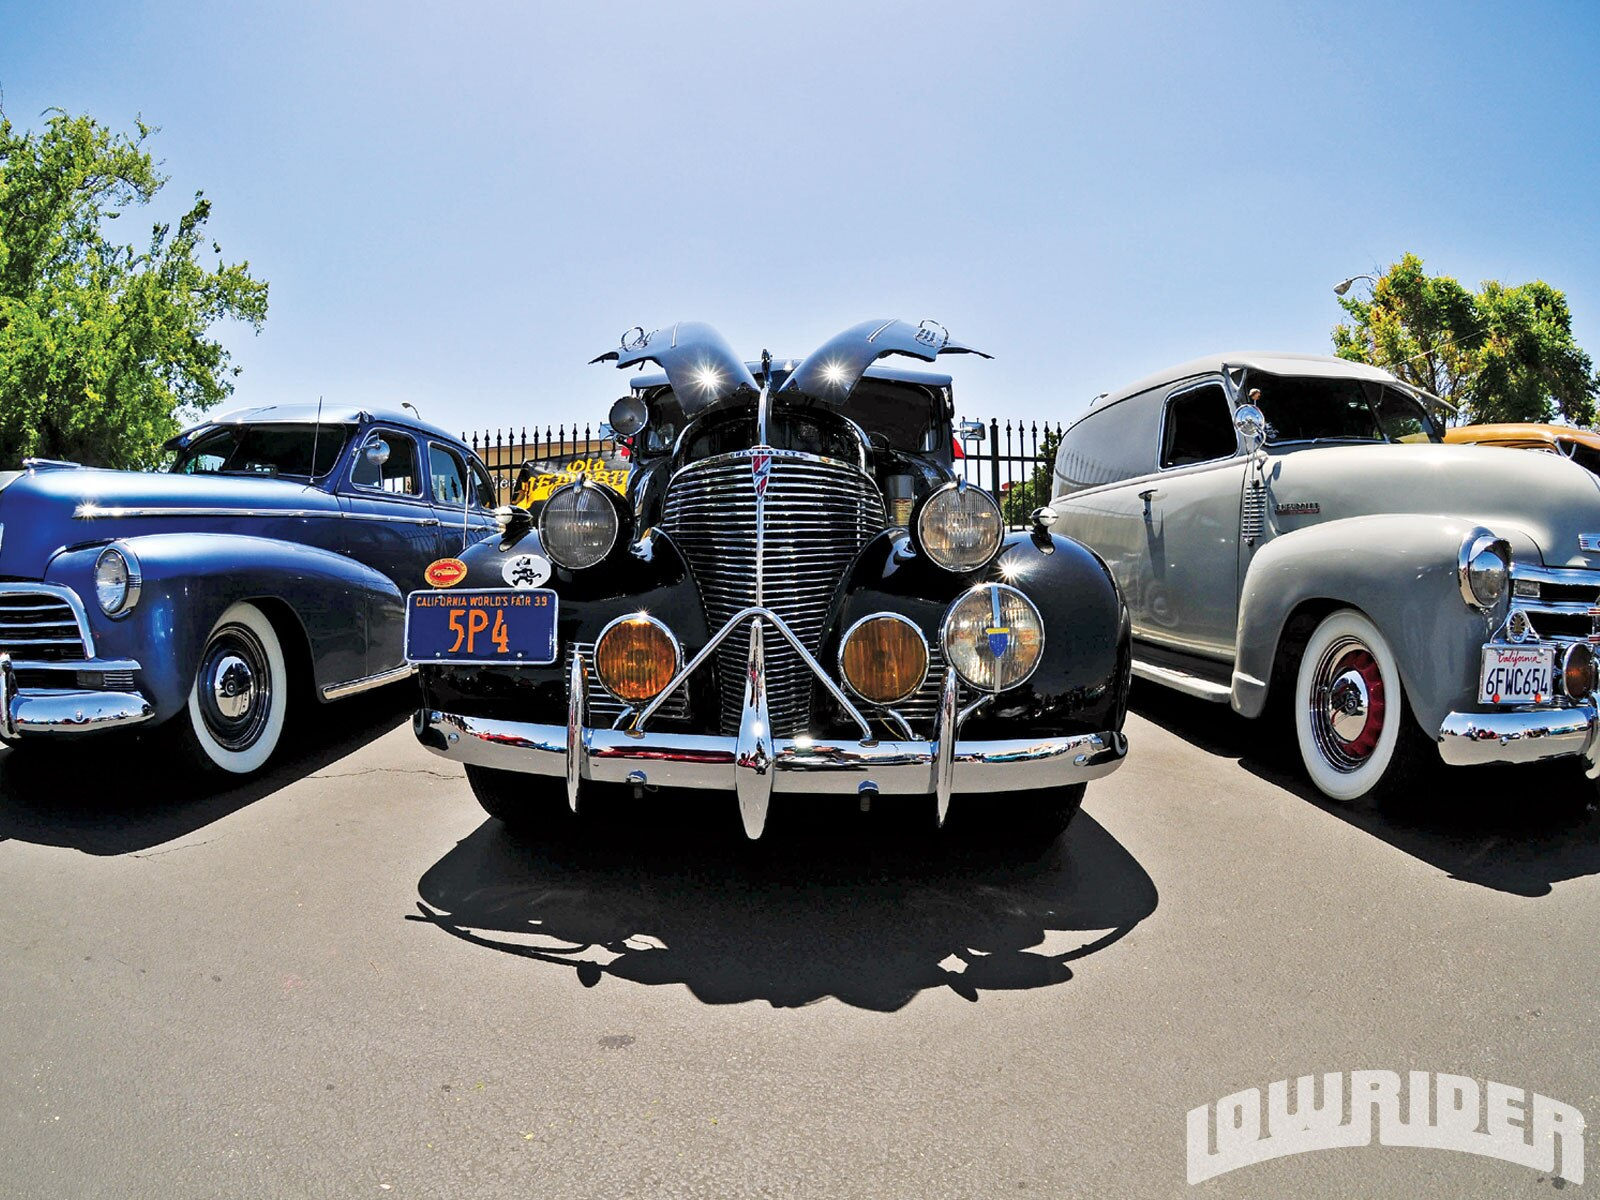 lrmp_1011_17_o-old_memories_car_show-5p4_chevy4